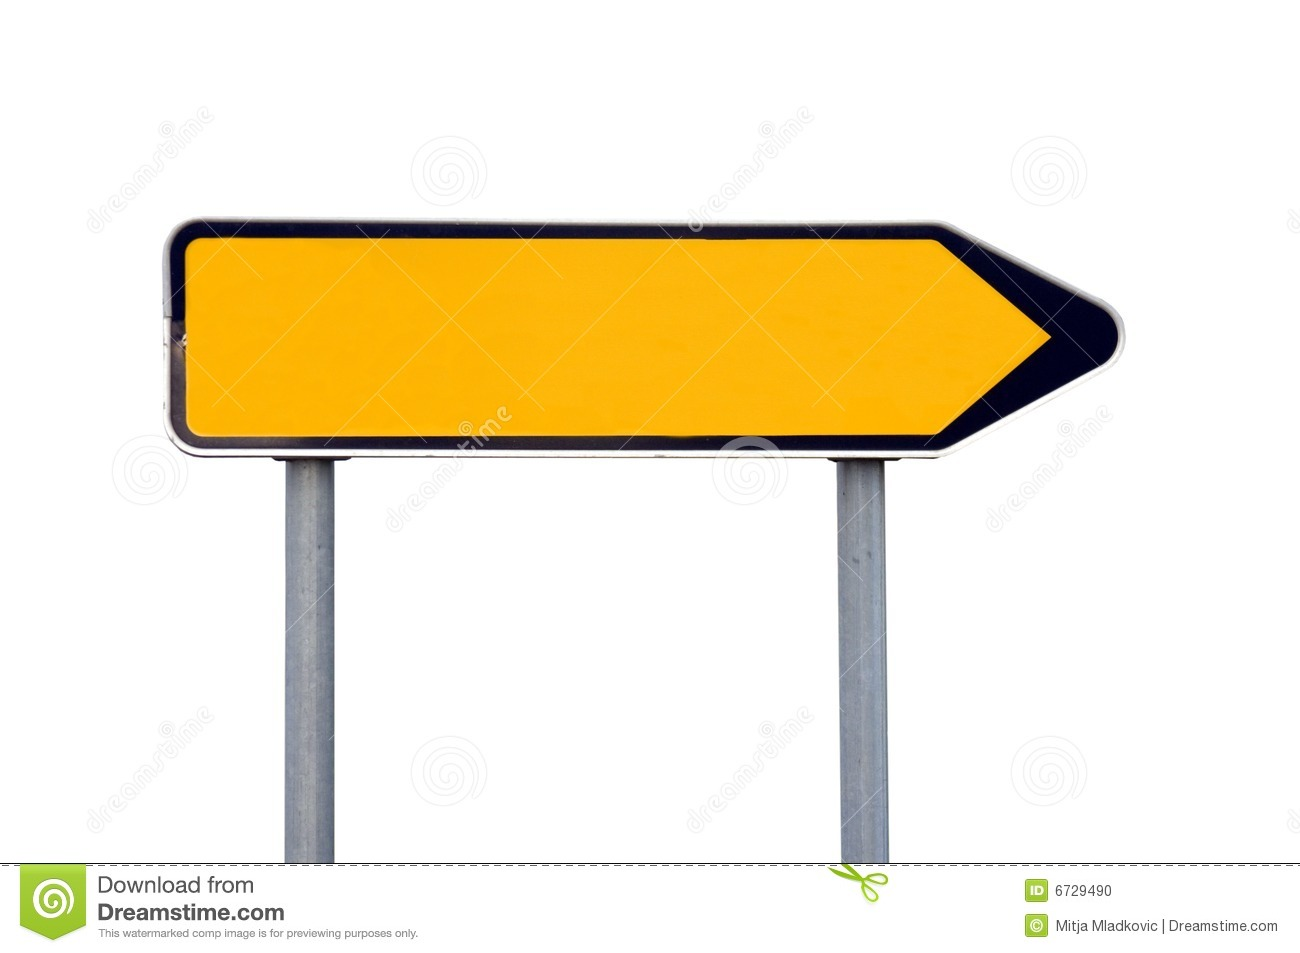 Blank yellow and black direction signs isolated on white.